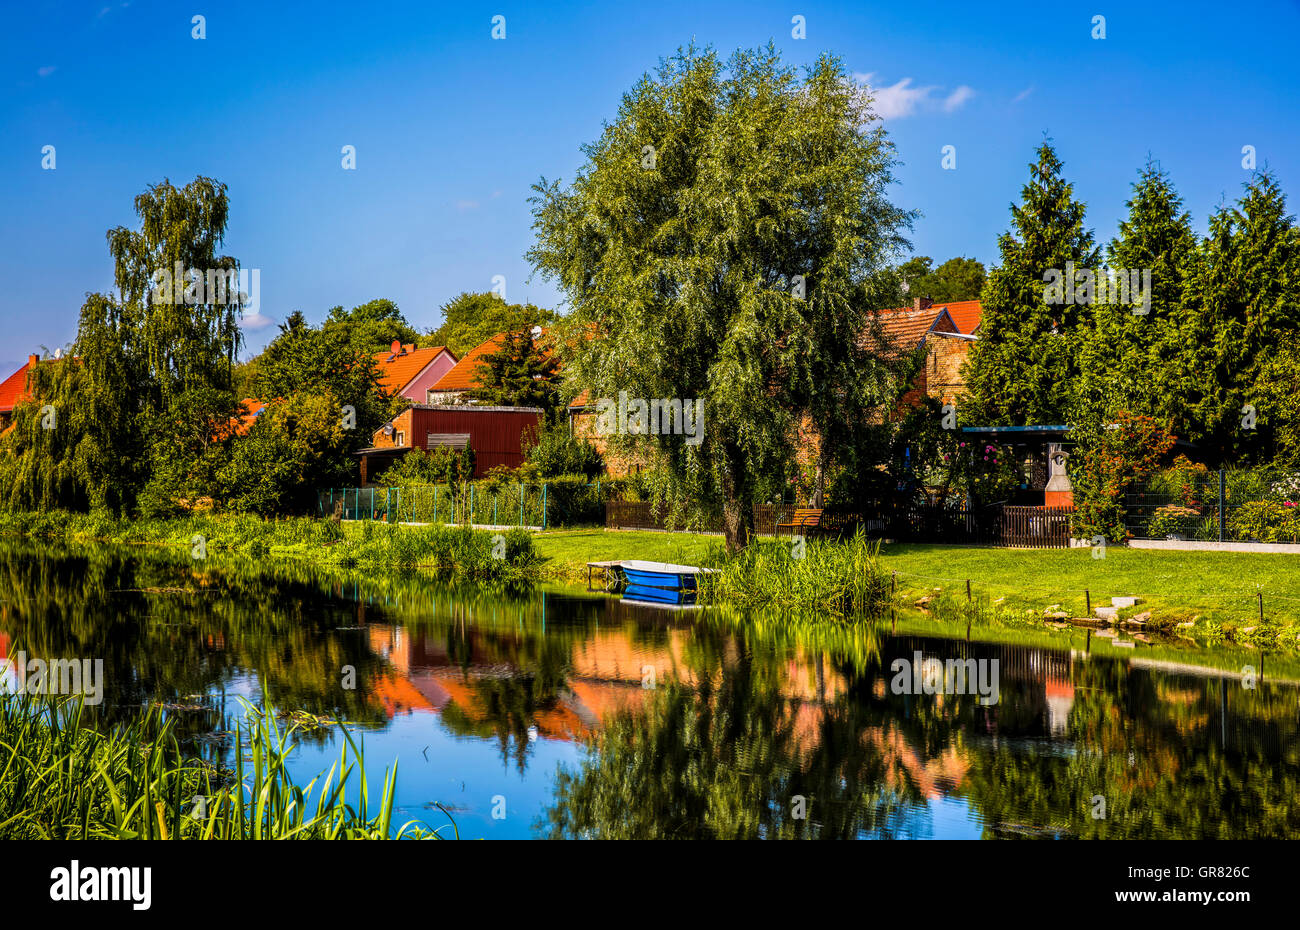 Living At The River - Stock Image